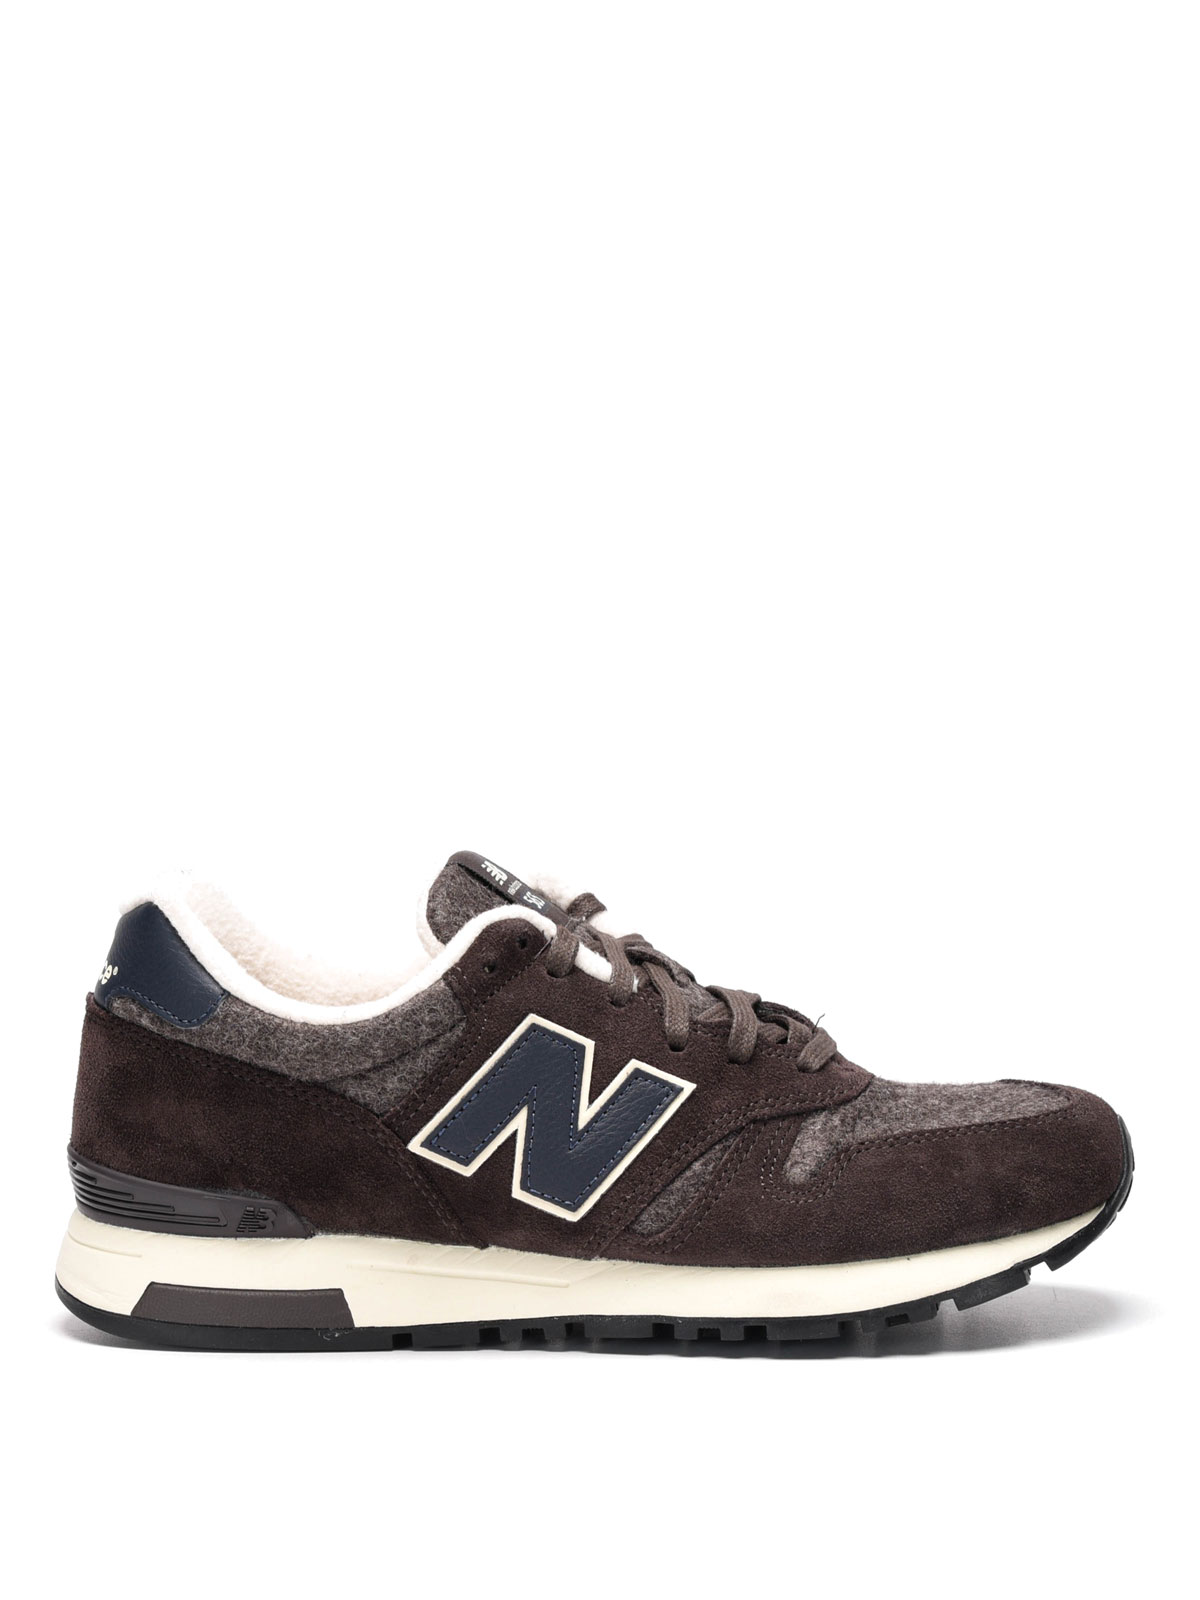 565 suede and cloth sneakers by new balance trainers ikrix. Black Bedroom Furniture Sets. Home Design Ideas